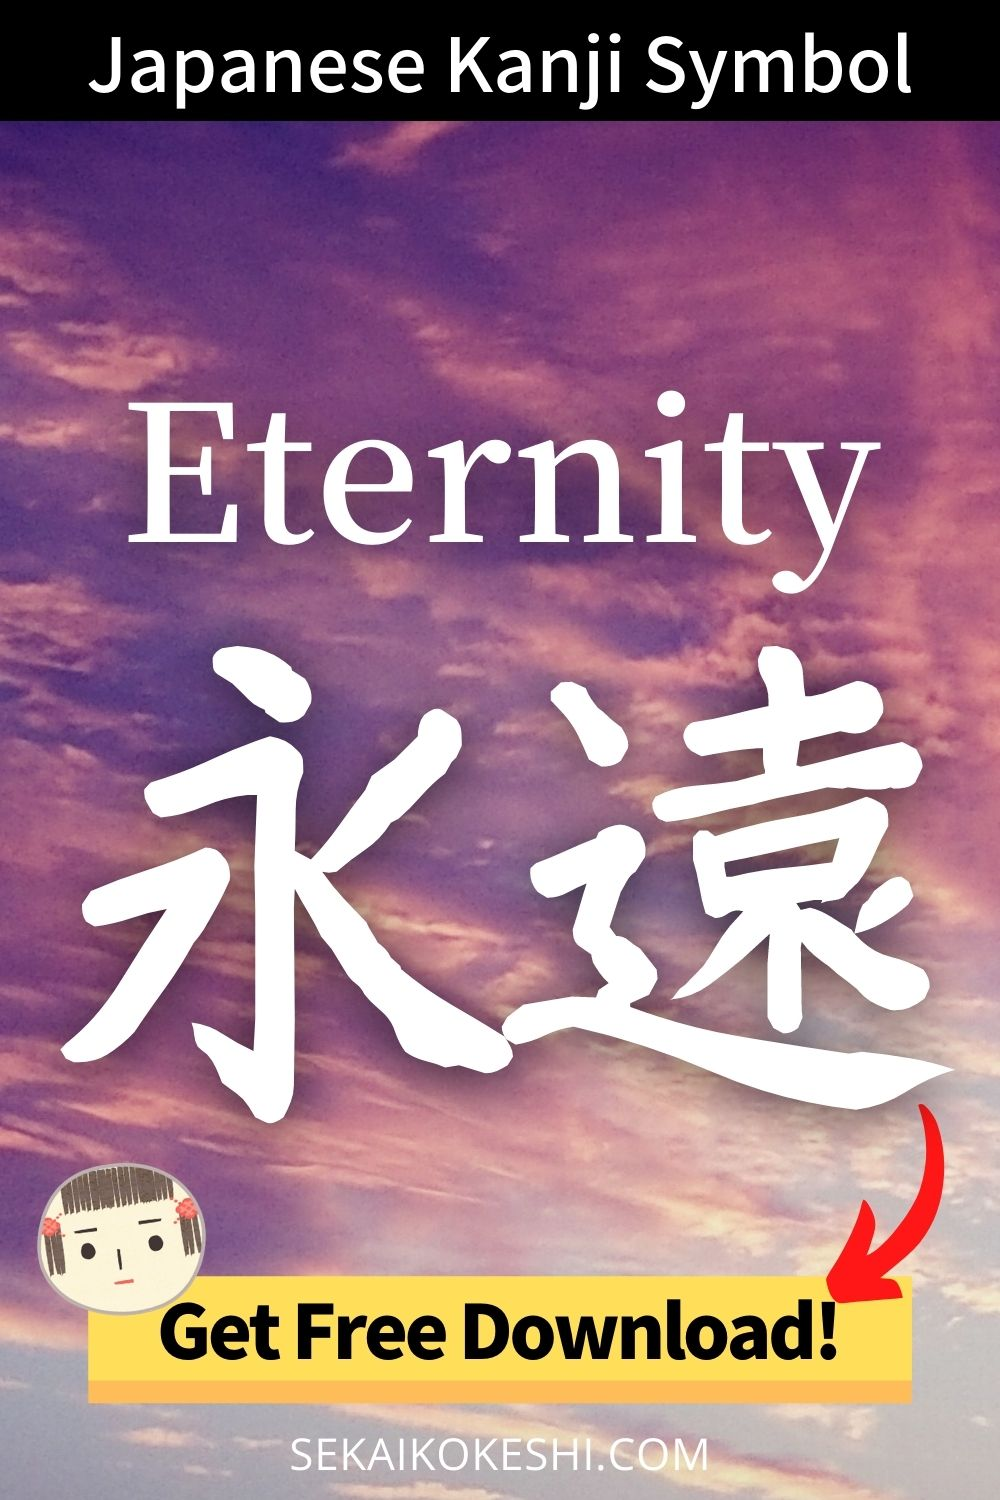 japanese kanji symbol, eternity, get free download!